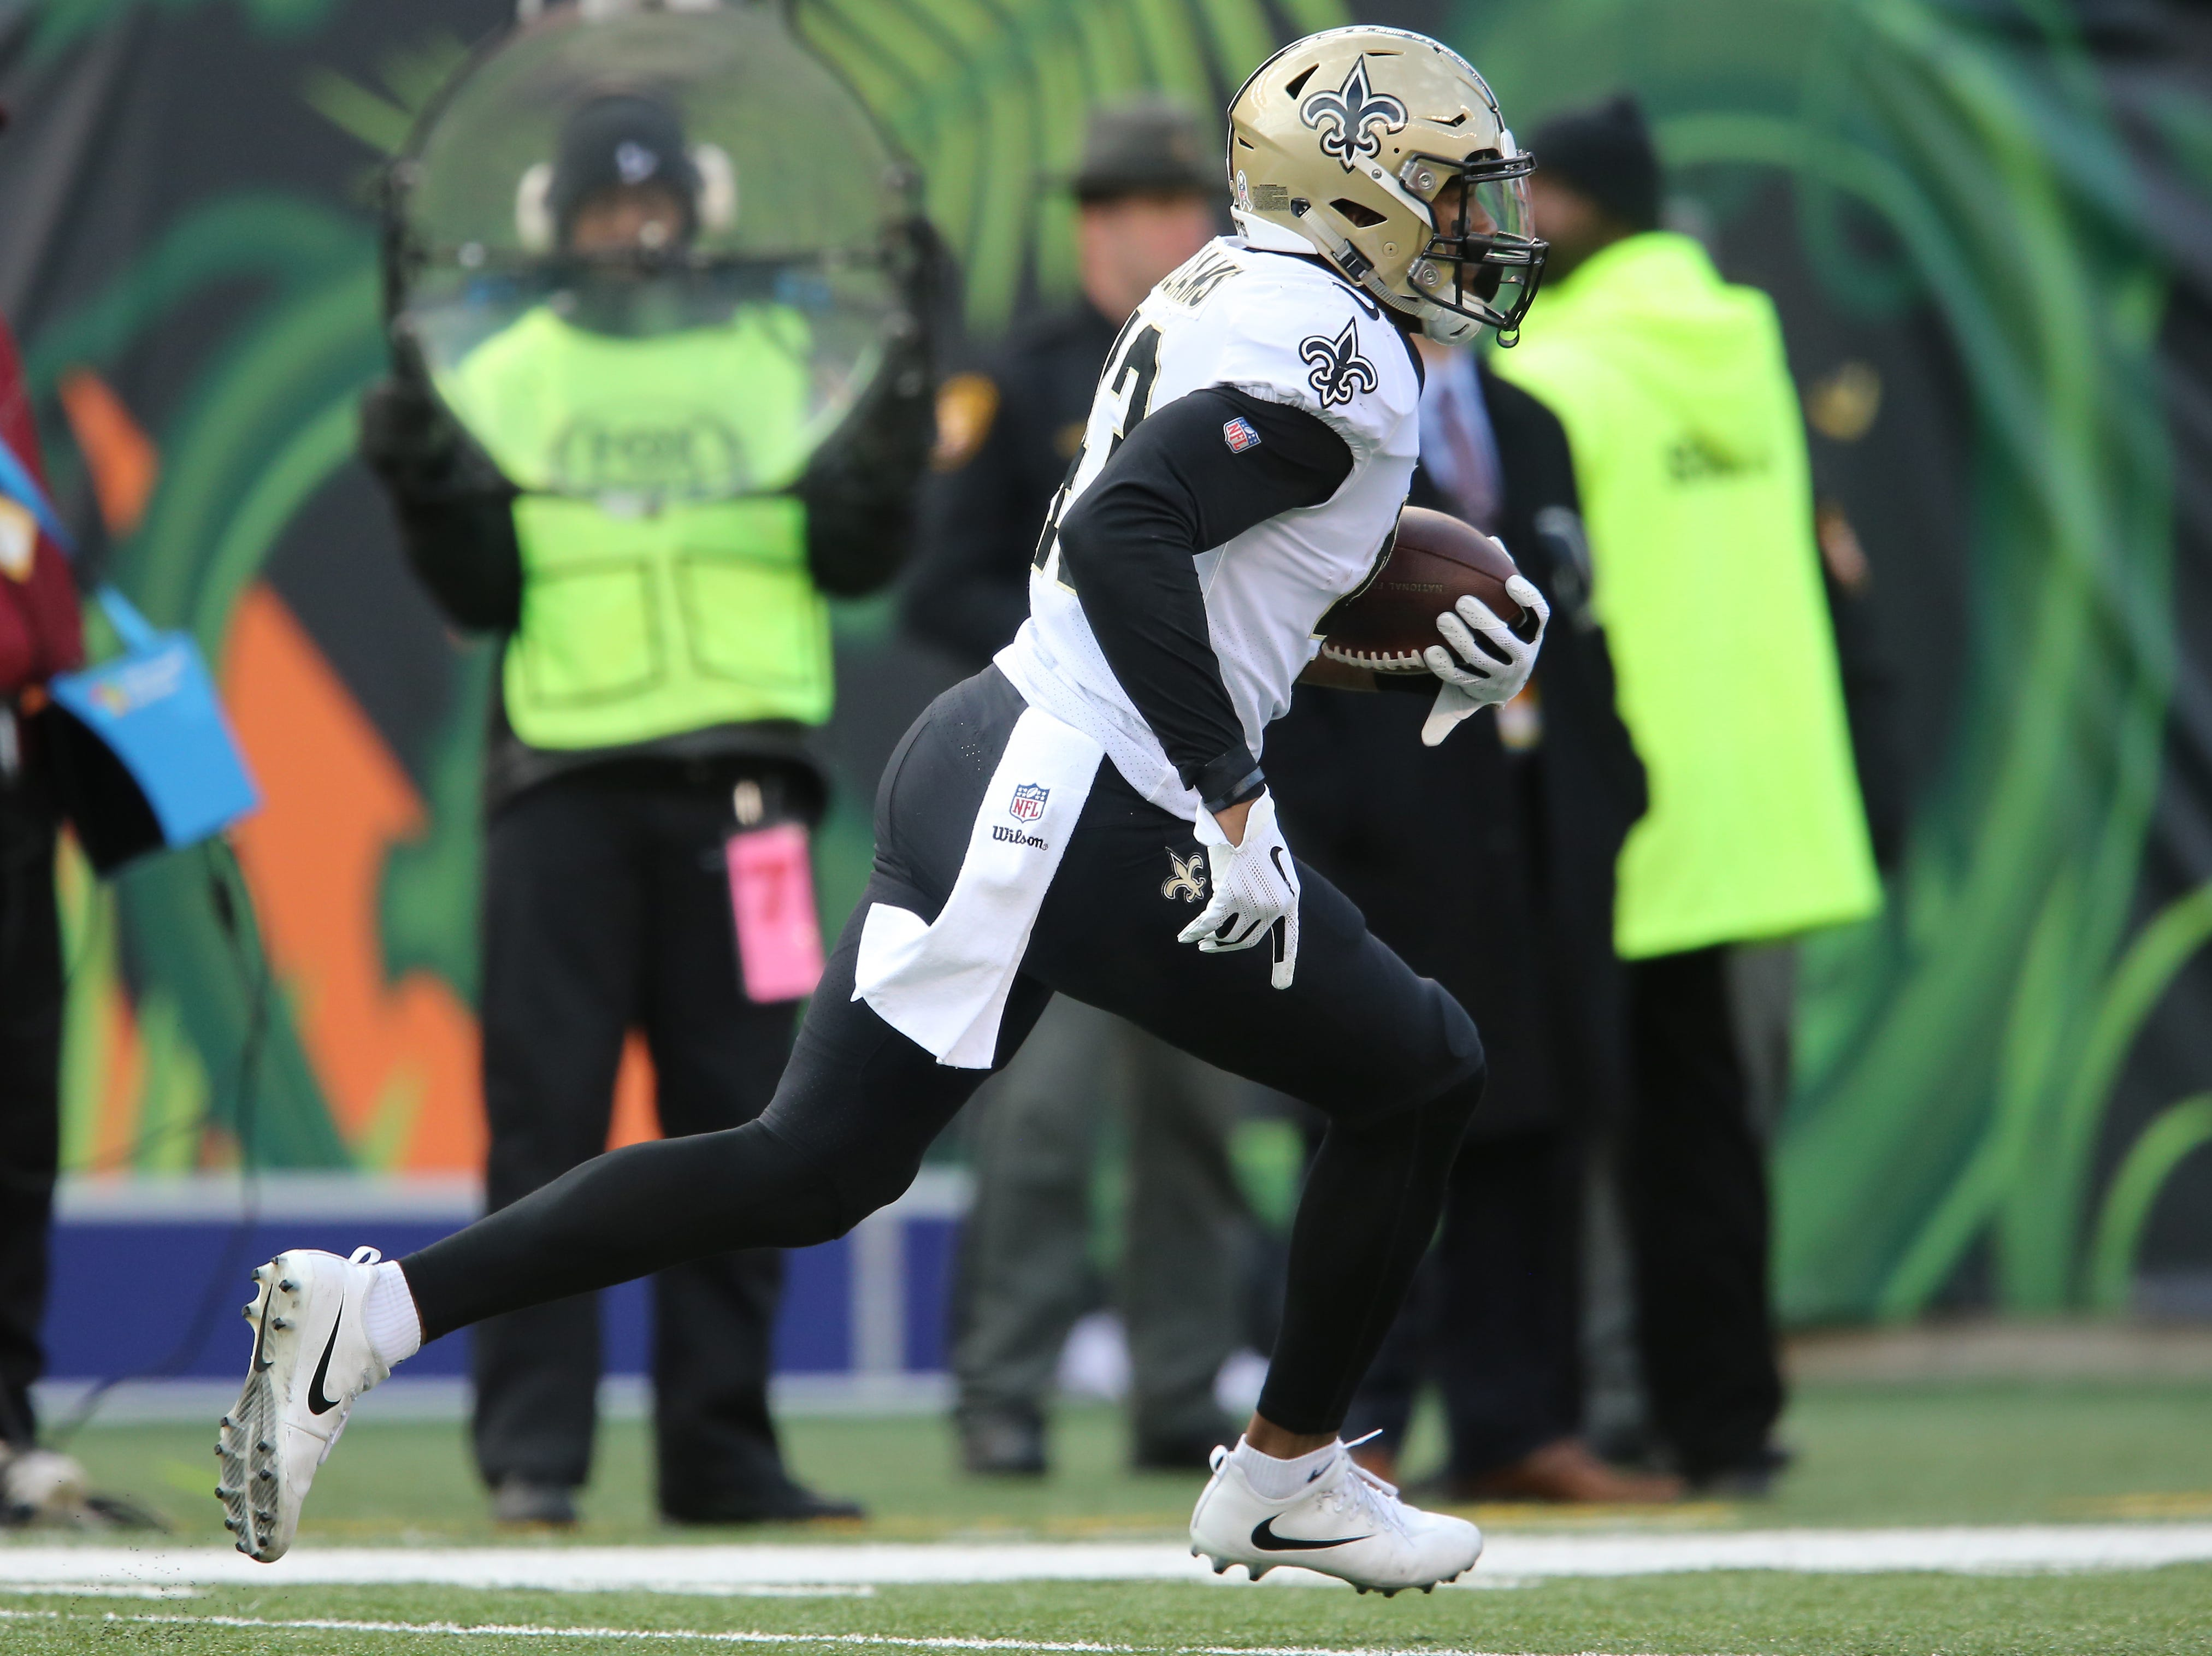 New Orleans Saints free safety Marcus Williams (43) runs back an interception in the second quarter of a Week 10 NFL game between the New Orleans Saints and the Cincinnati Bengals, Sunday, Nov. 11, 2018, at Paul Brown Stadium in Cincinnati.